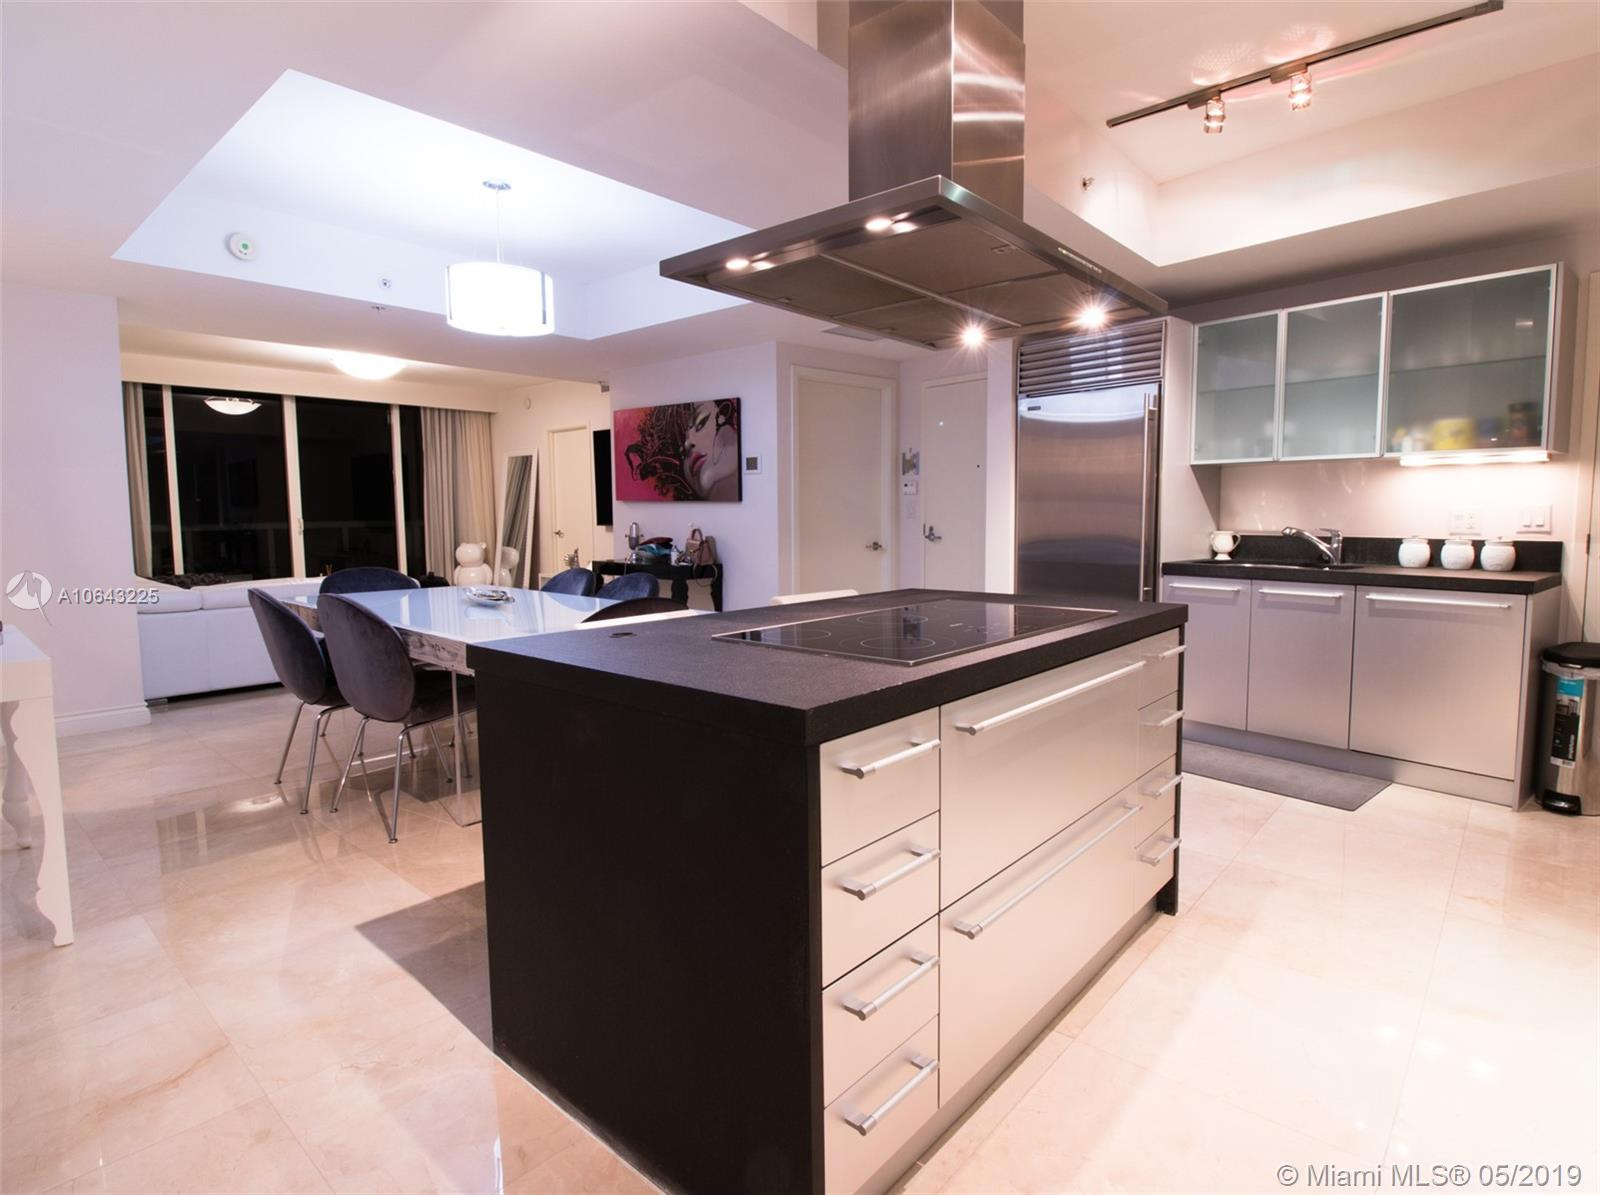 18201 Collins Ave #1704, Sunny Isles Beach FL 33160